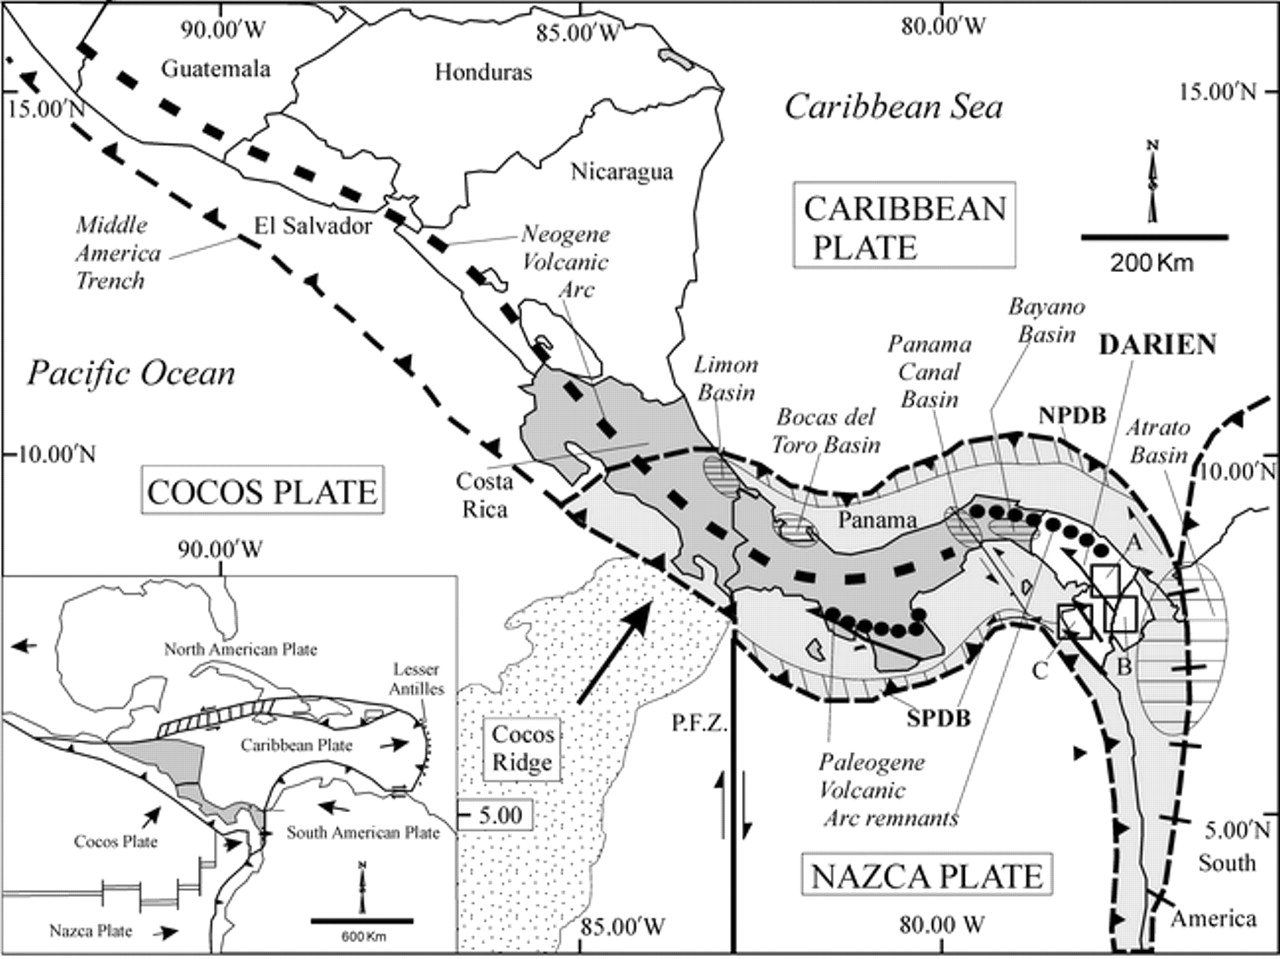 Jan 31 Panama Fracture Zone Shakes It Up